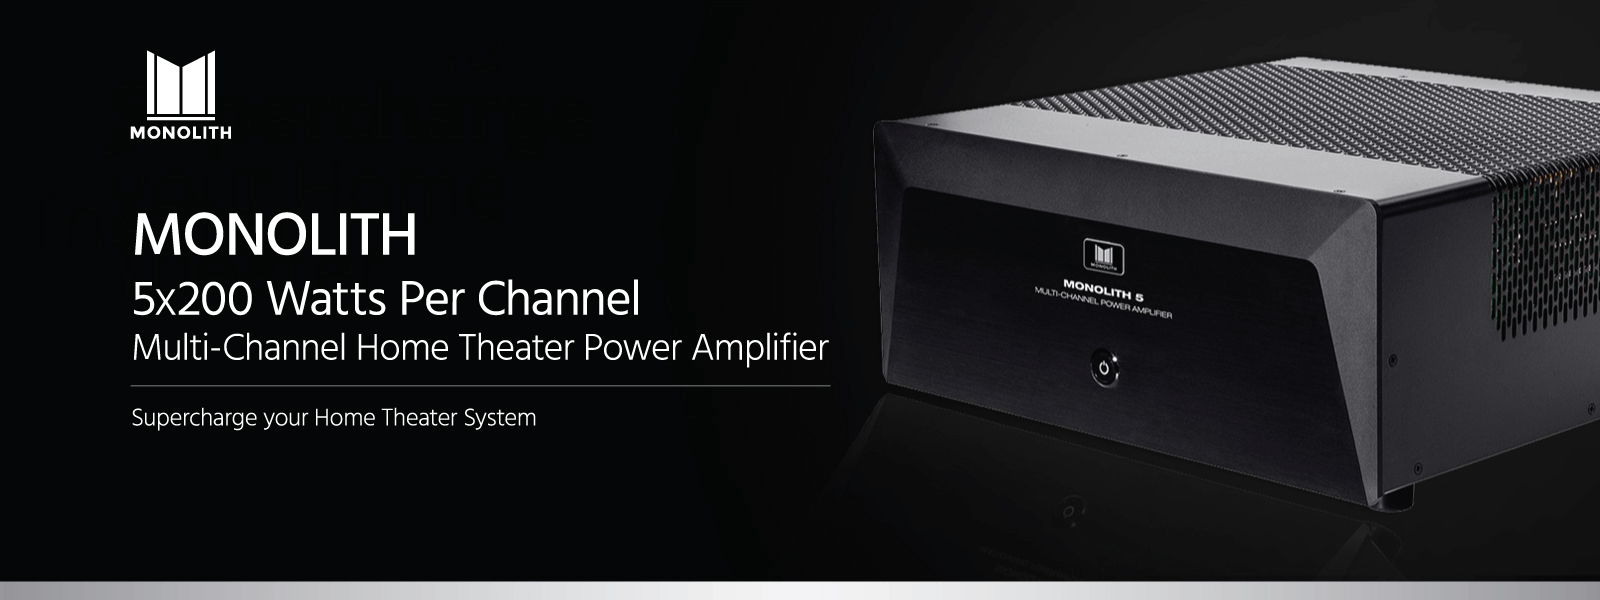 monolith 5x200 watts per channel multi channel home theater power amplifier with xlr inputs. Black Bedroom Furniture Sets. Home Design Ideas